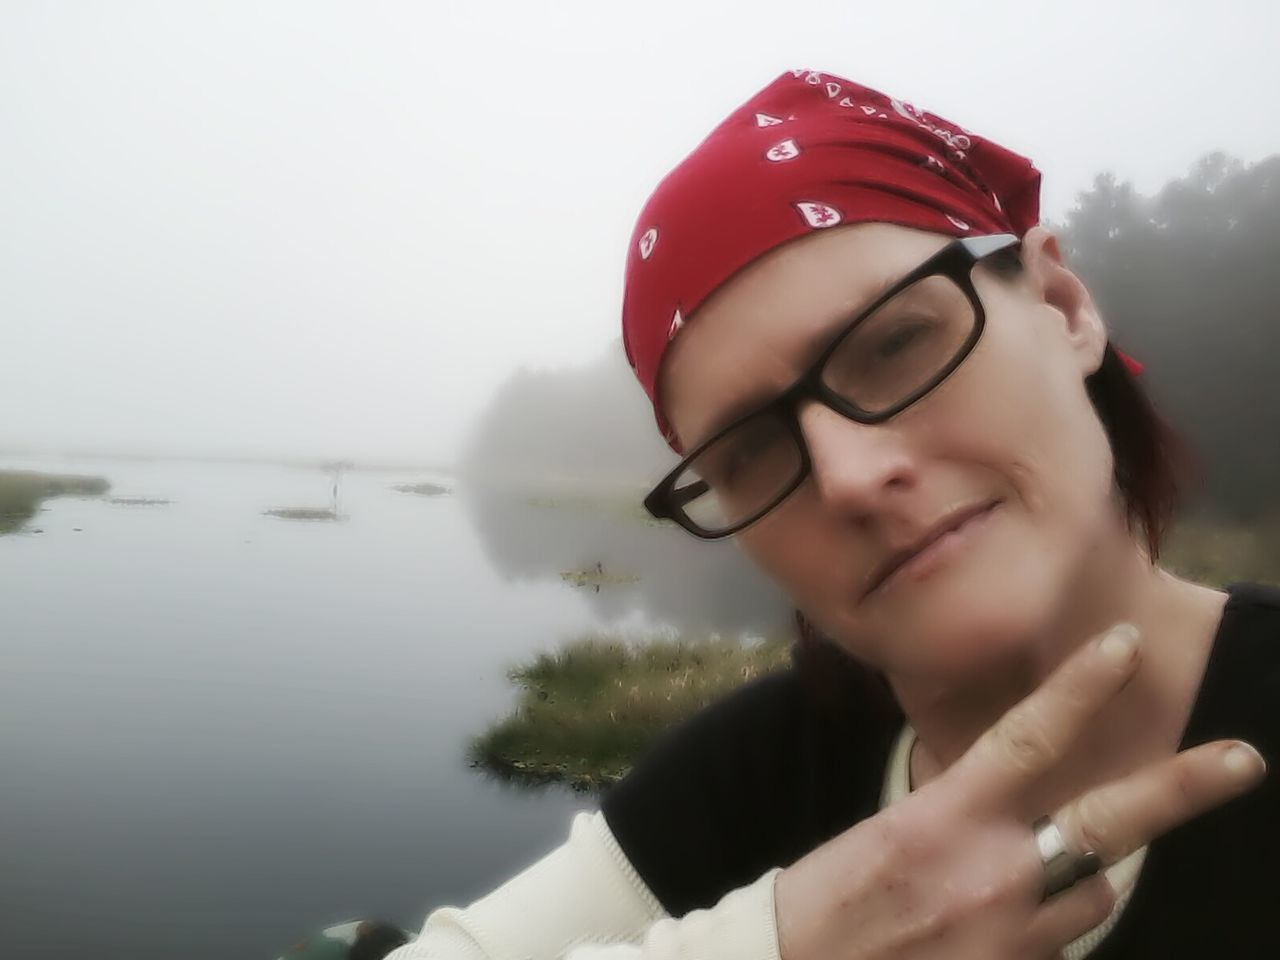 Taken on 1/3/15. I was chillin at the river early this morning. That's Me Enjoying Life Hello World Relaxing